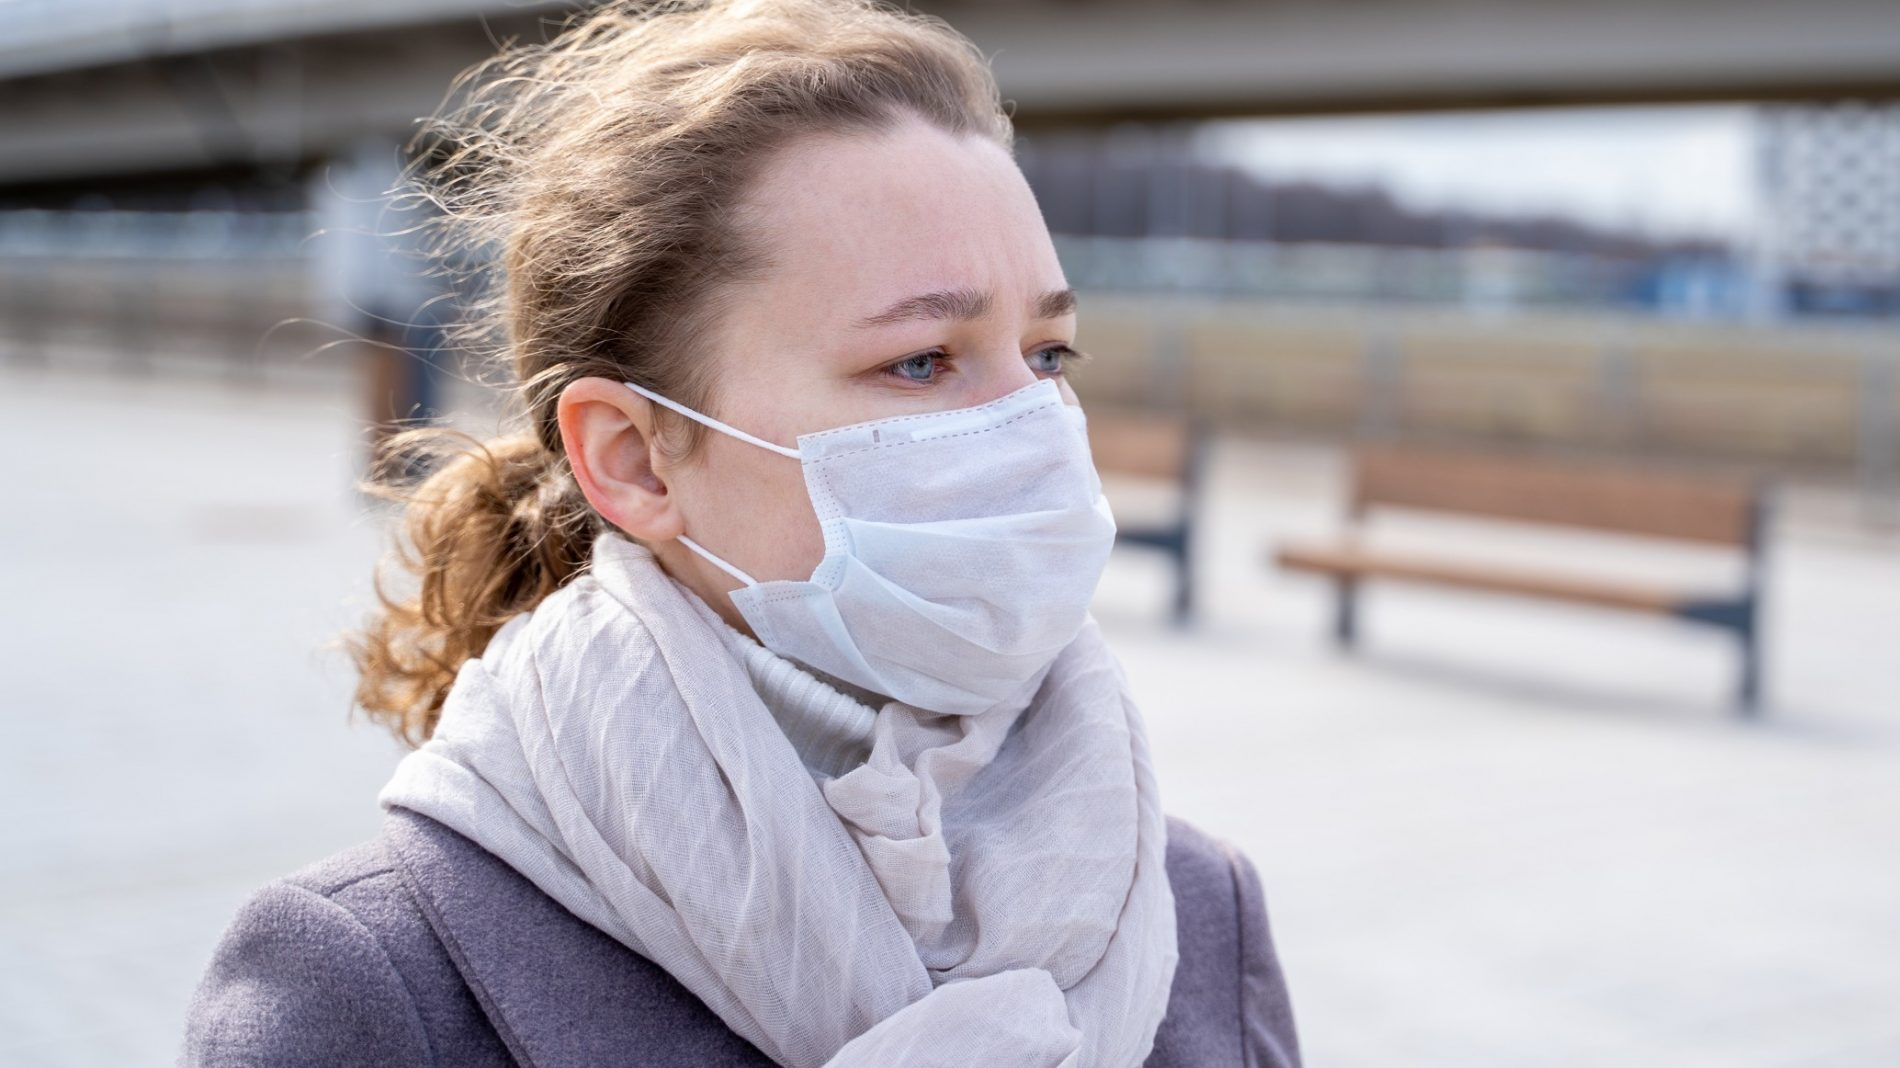 Young person outside with a facemask on